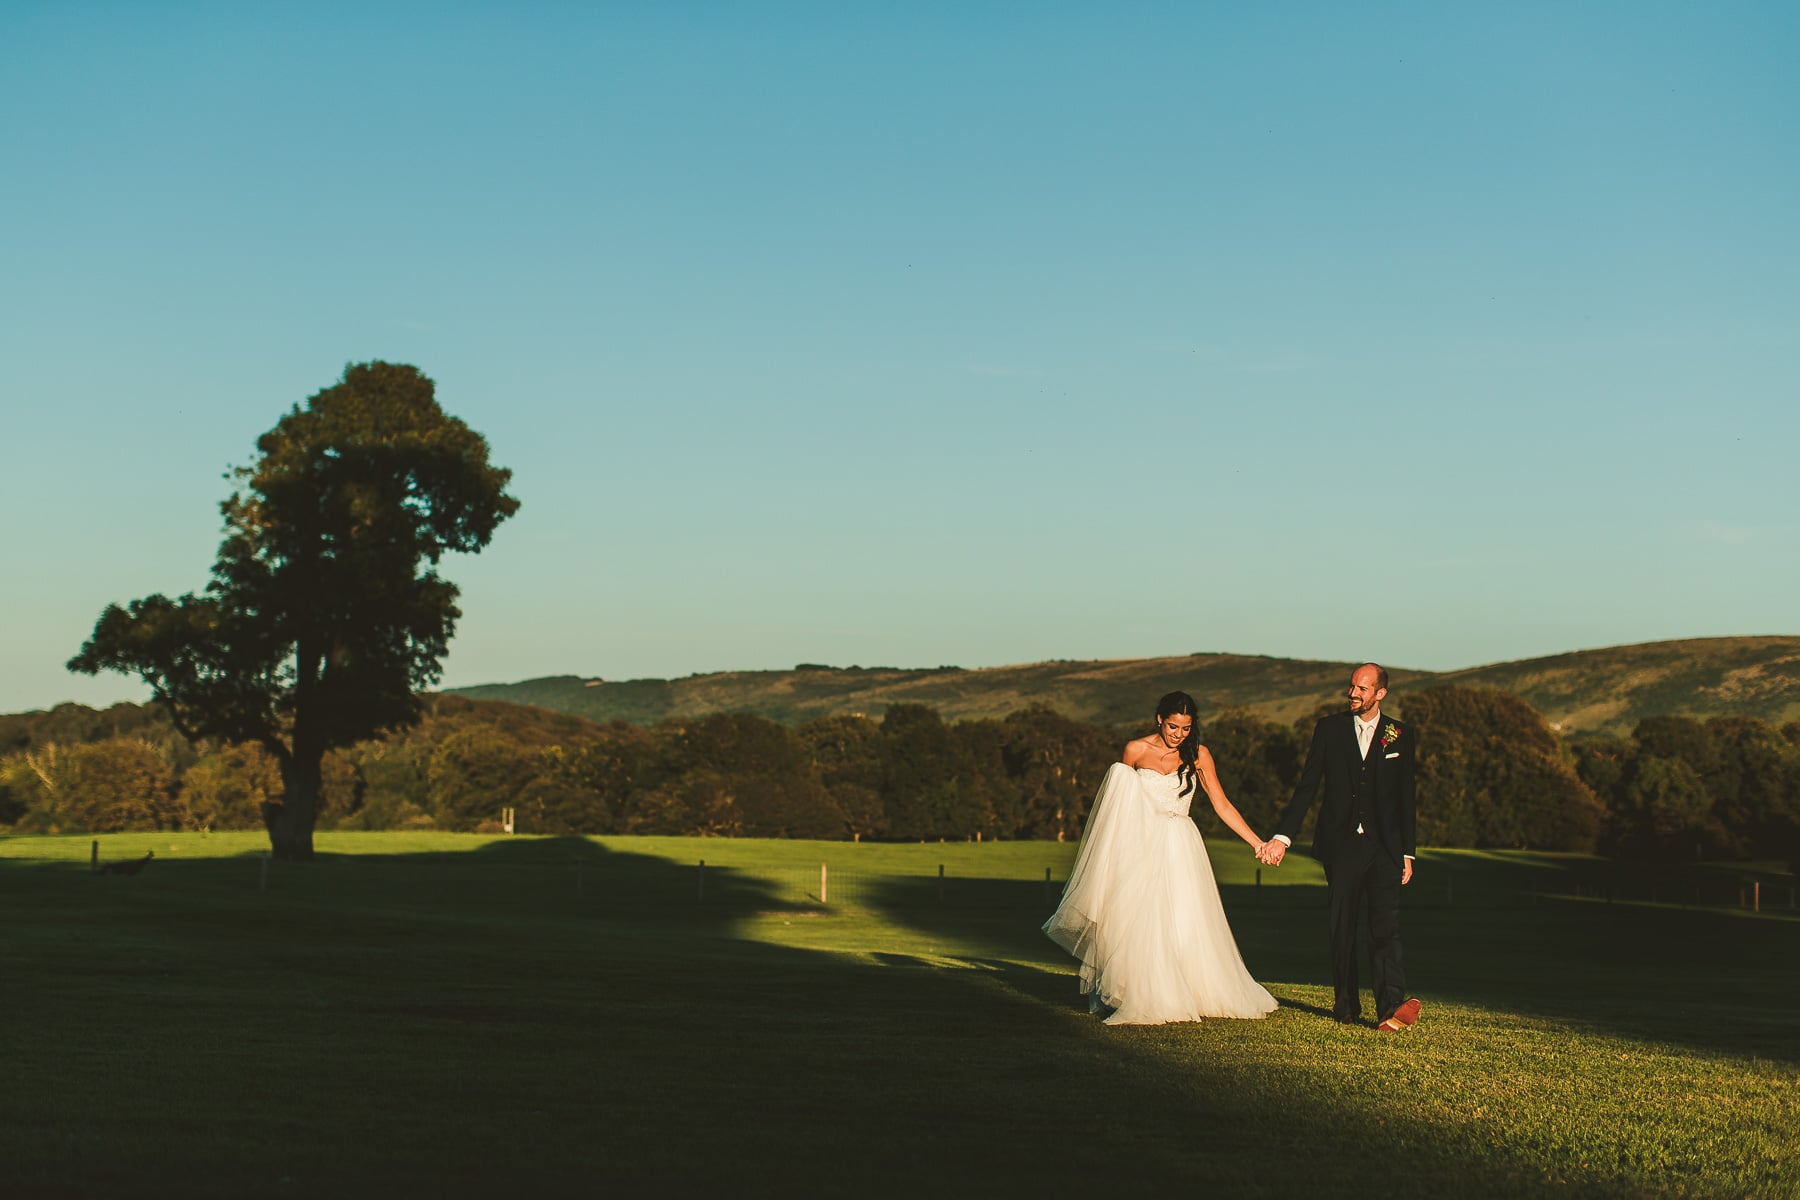 Sunset-wedding-portrait-Lulworth-Castle-Dorset